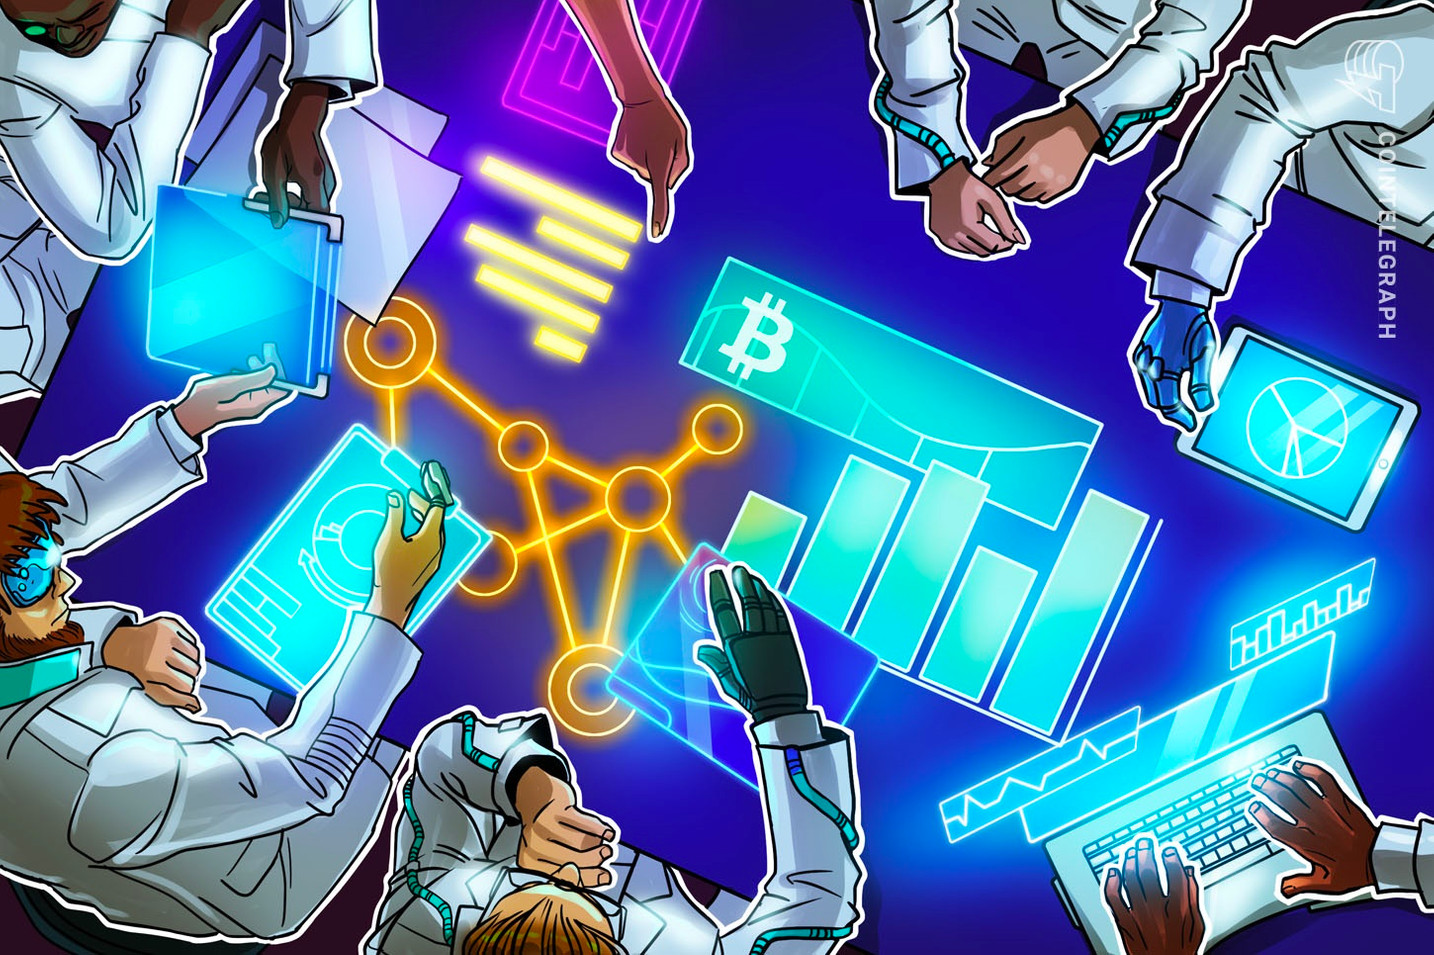 What Caused Bitcoin Price to Surge Past $10K Over the Weekend?